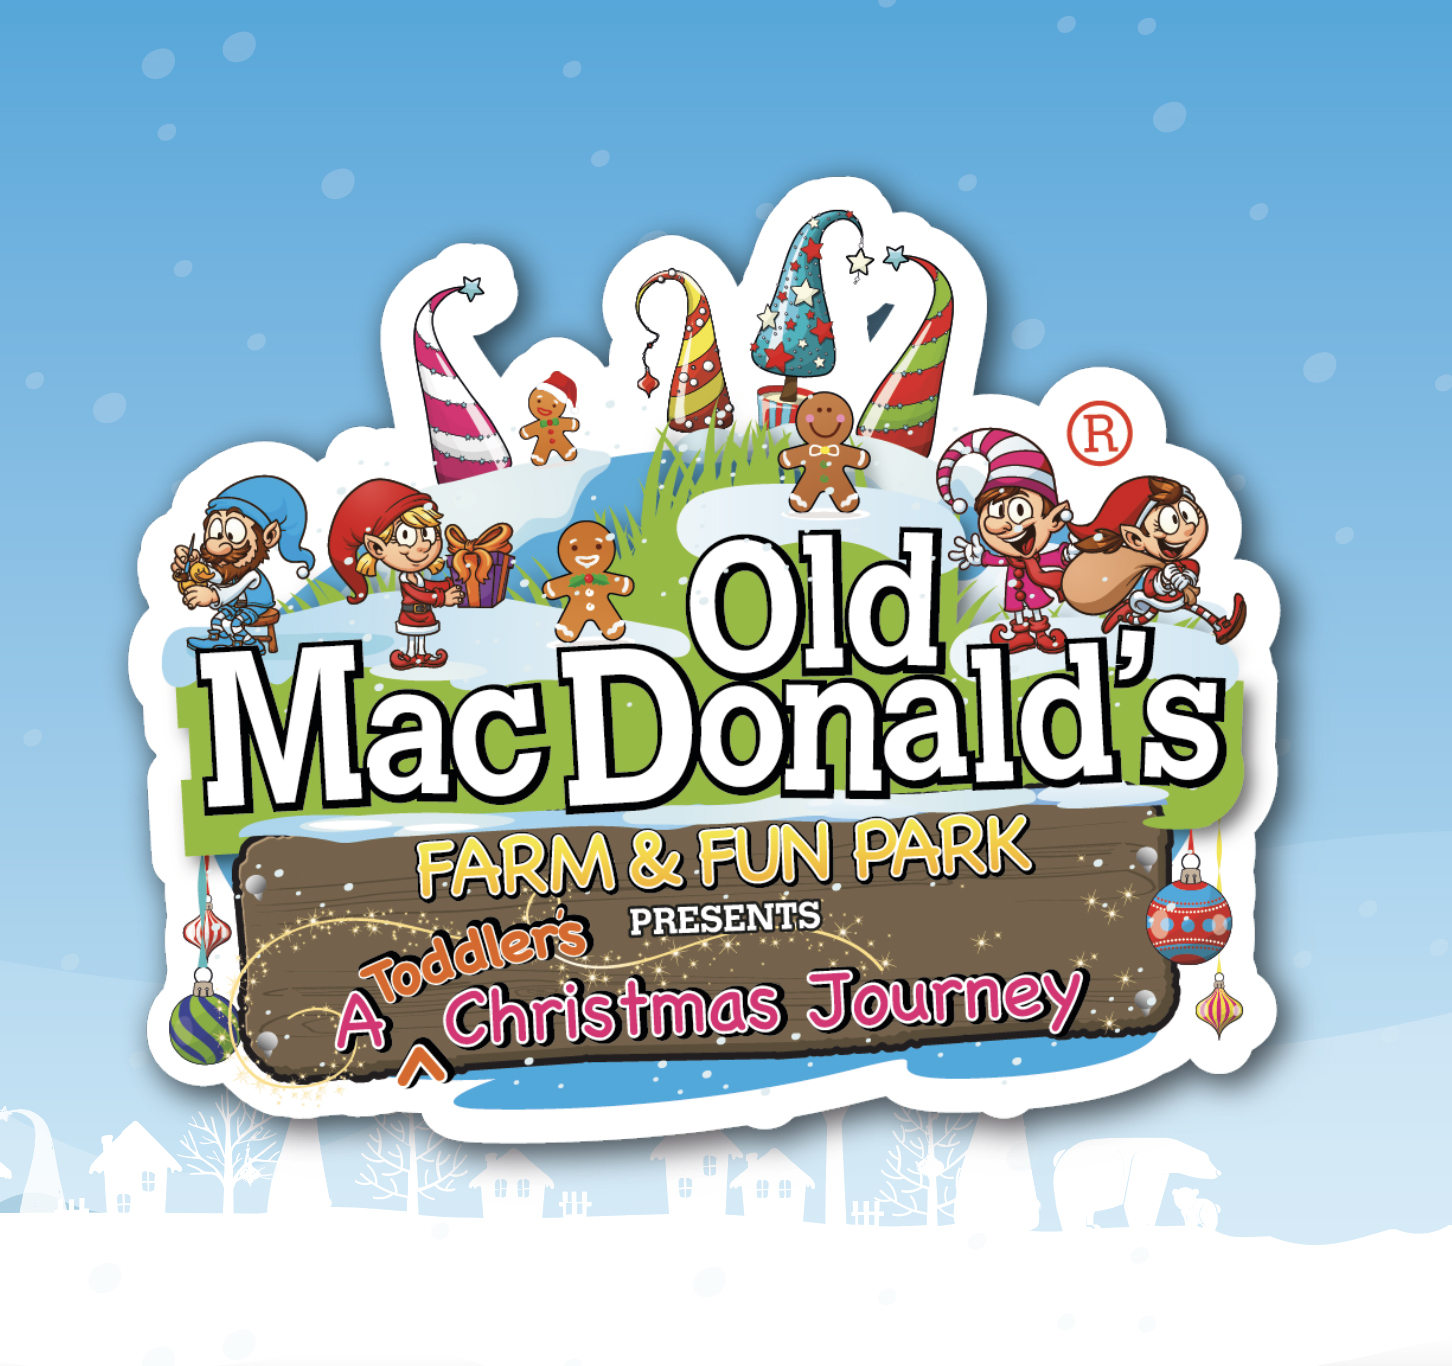 A Toddler's Christmas Journey at OMD Farm is FREE!